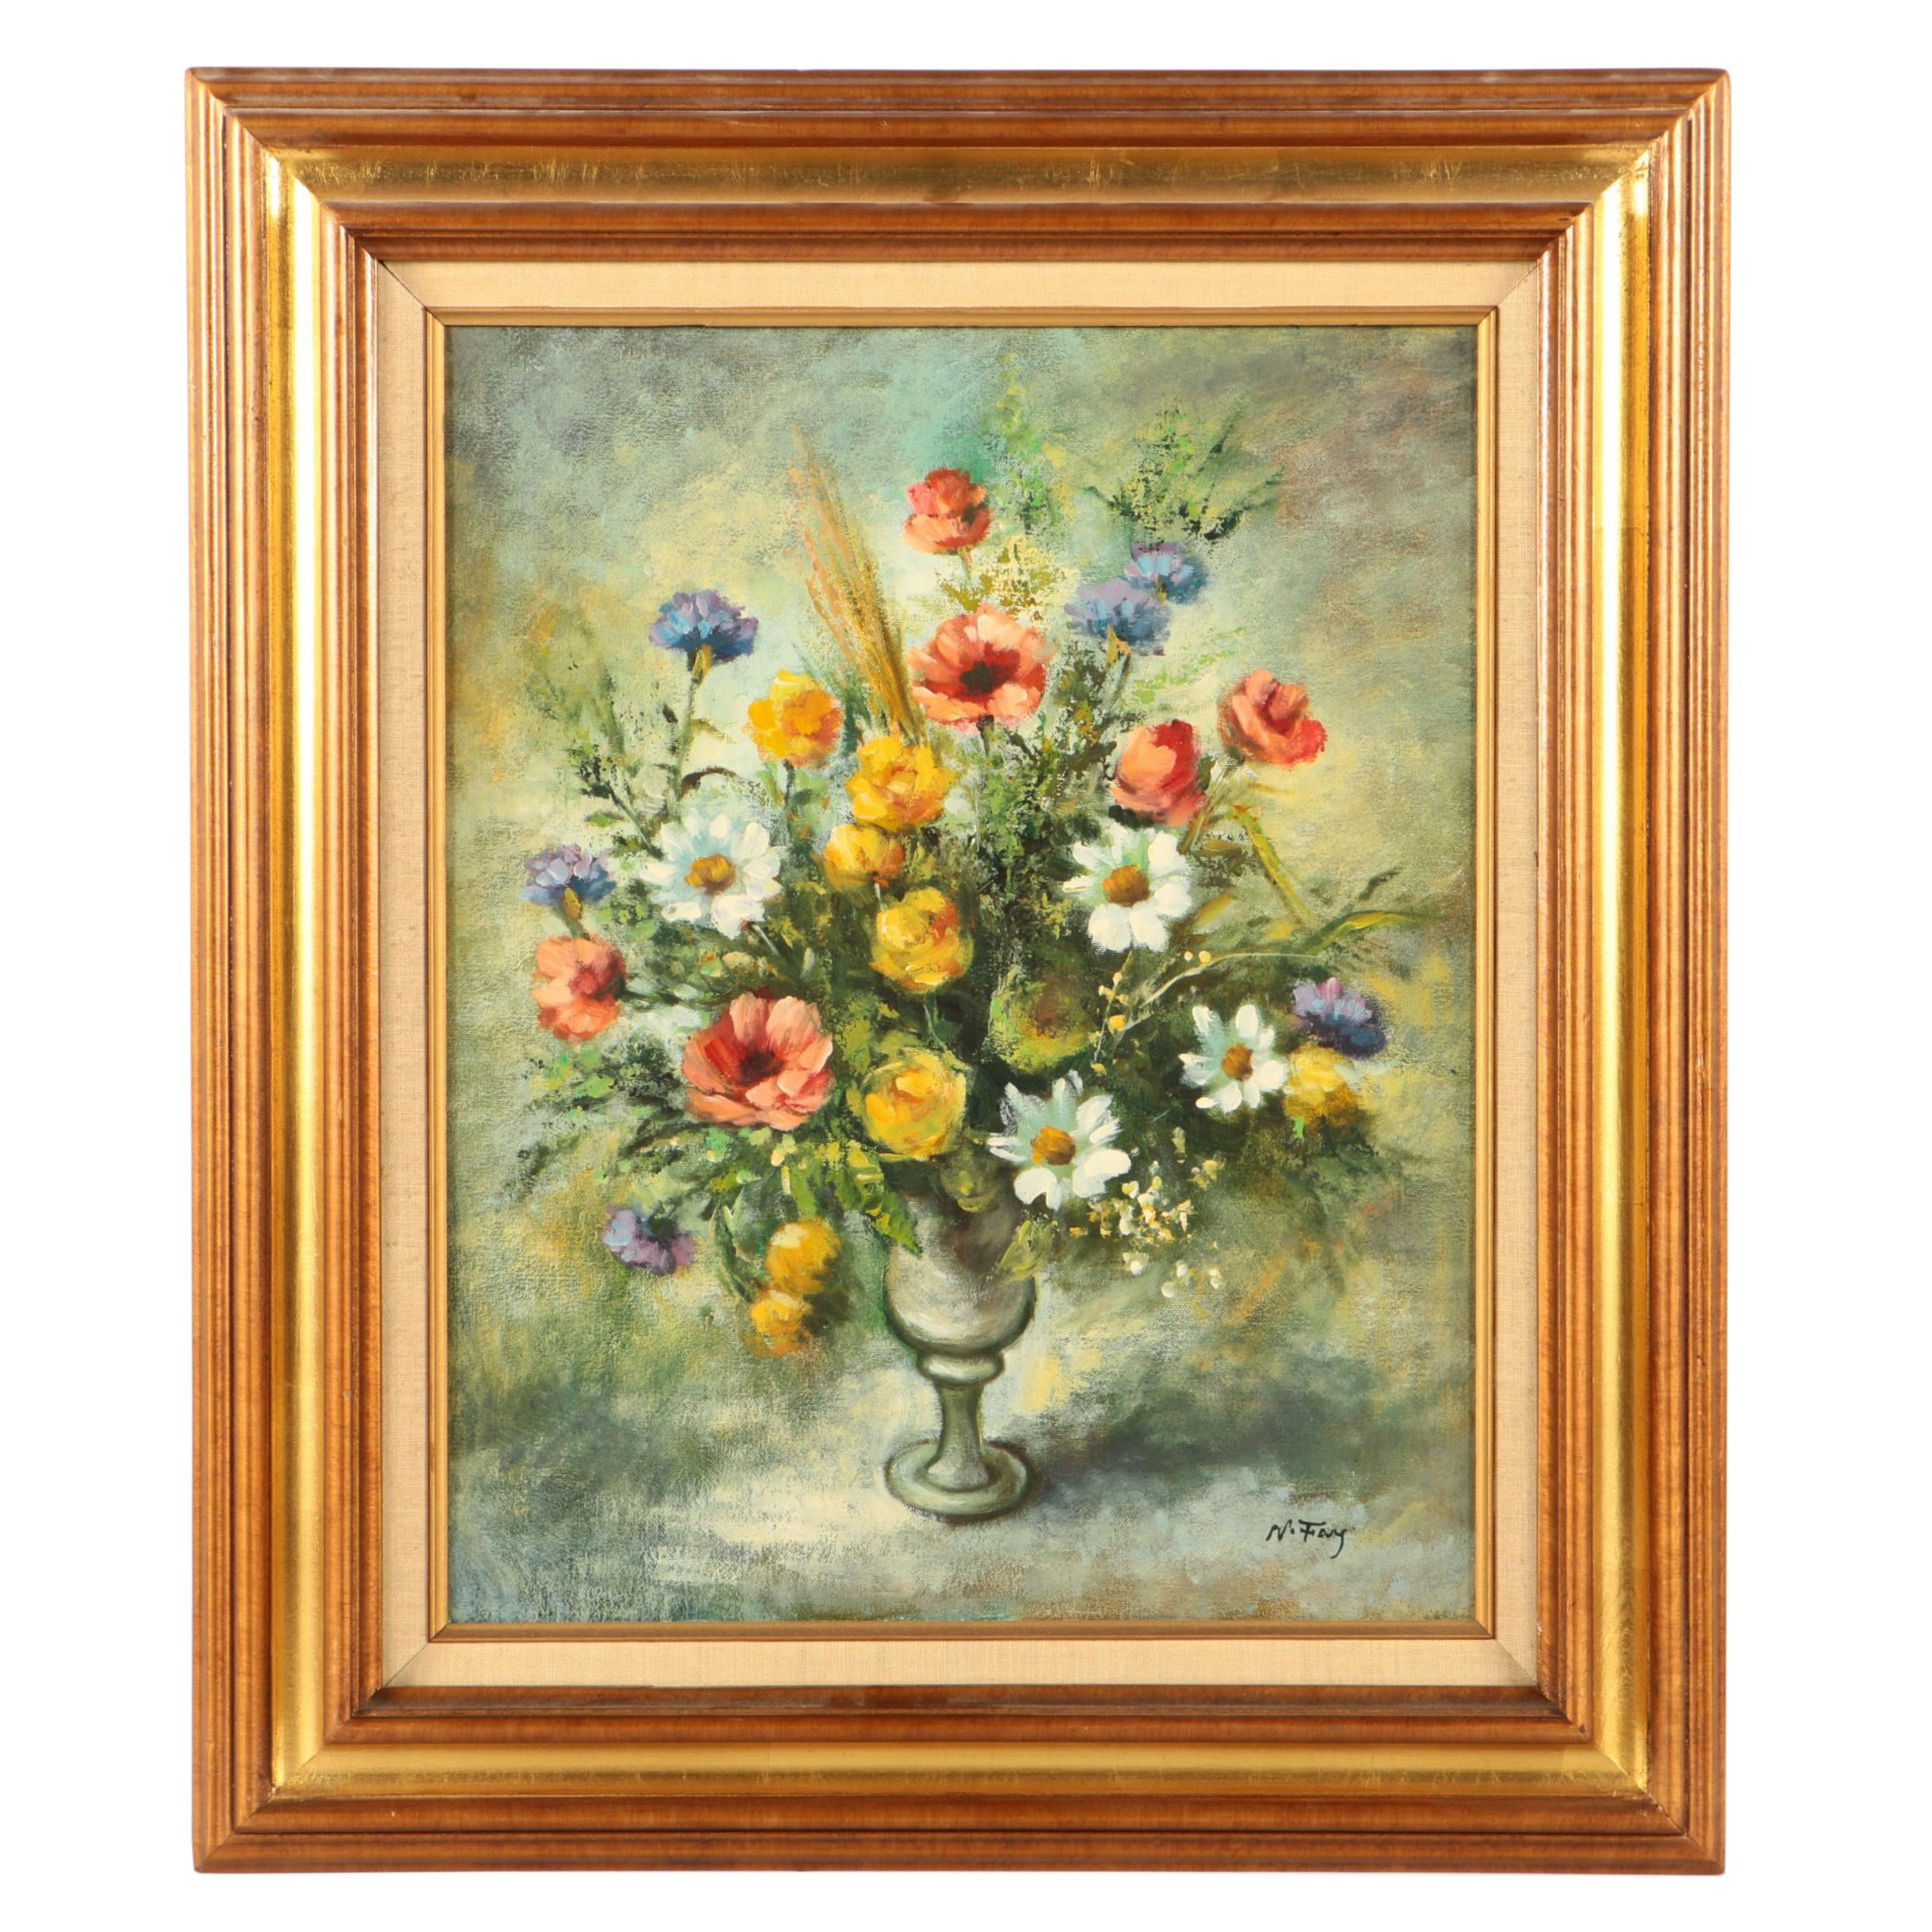 N. Fay Oil Painting on Canvas of Floral Still Life